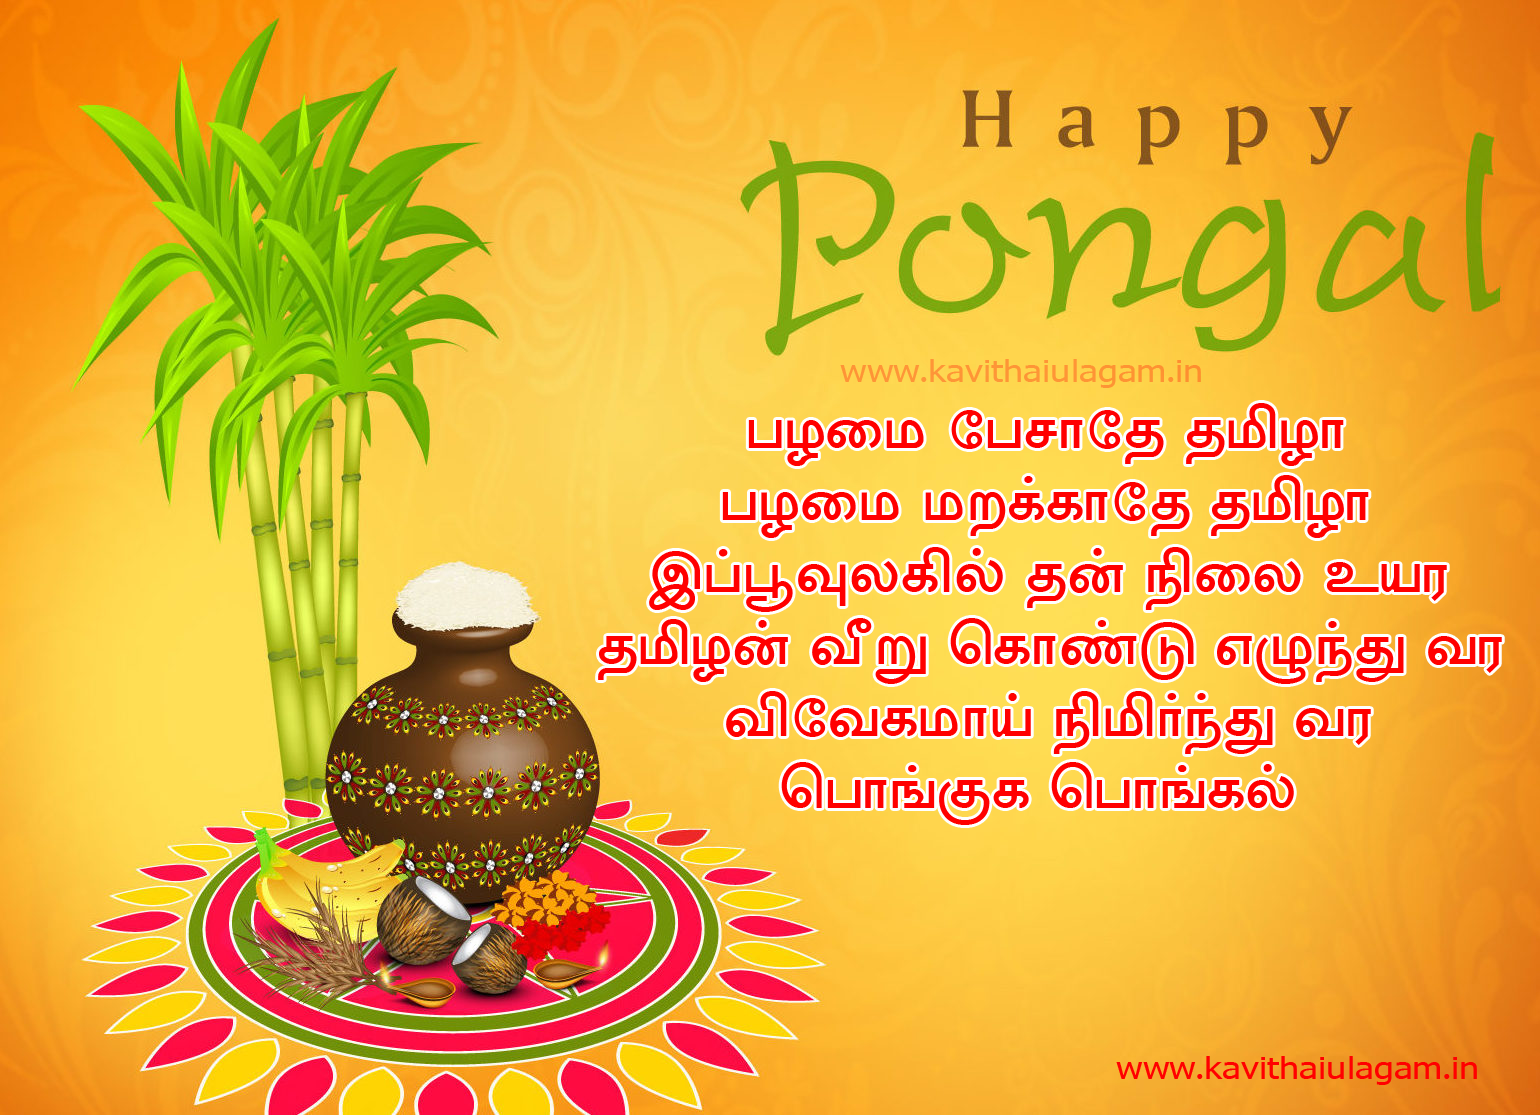 Happy Pongal Wishes Greetings In Tamil 2021